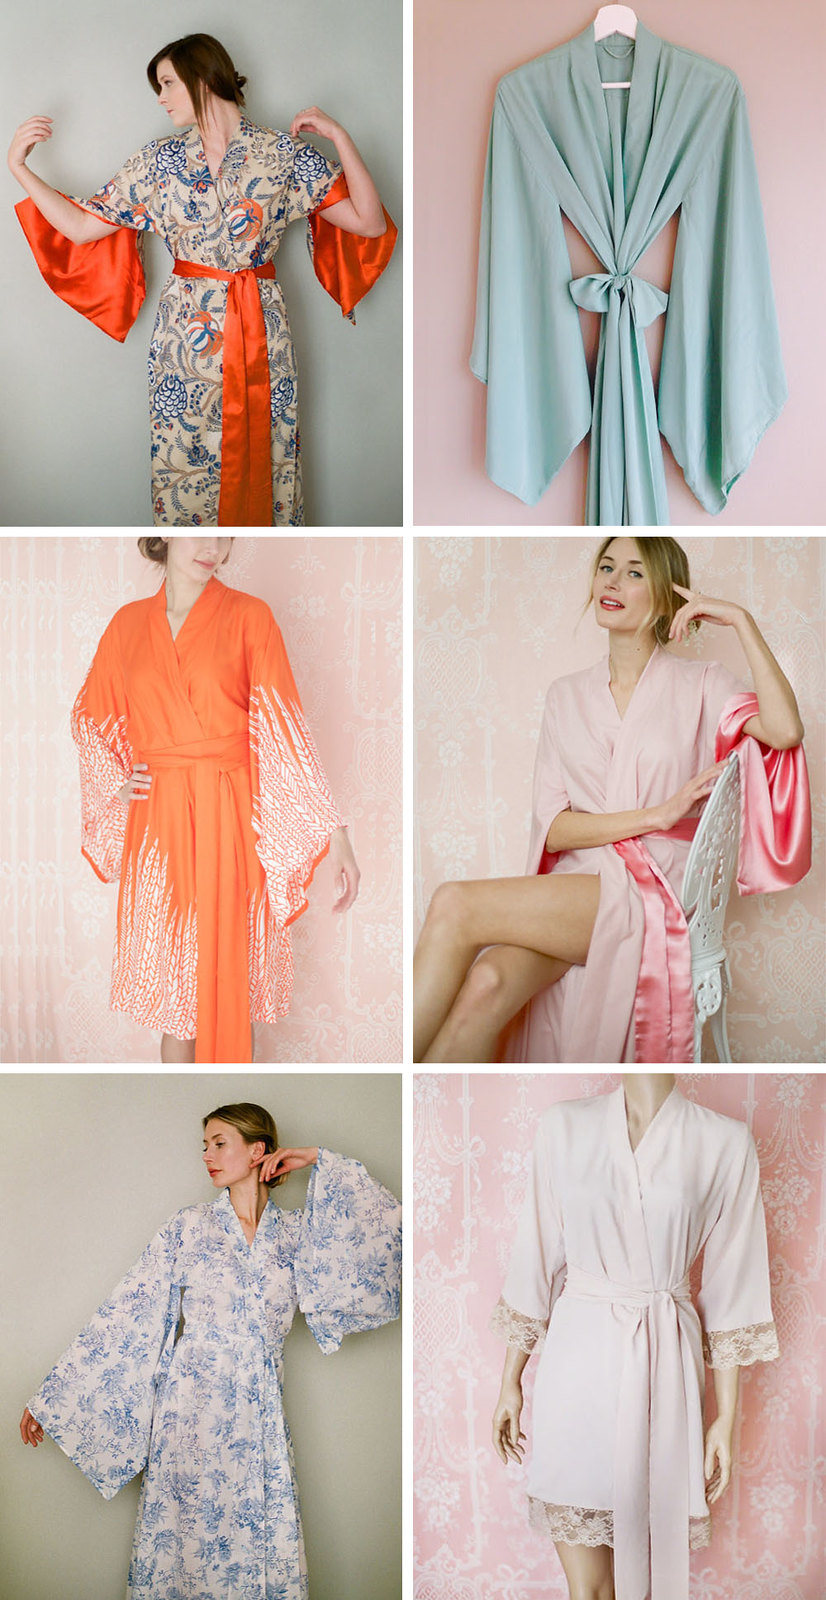 Singing Slowly robes (on Etsy)